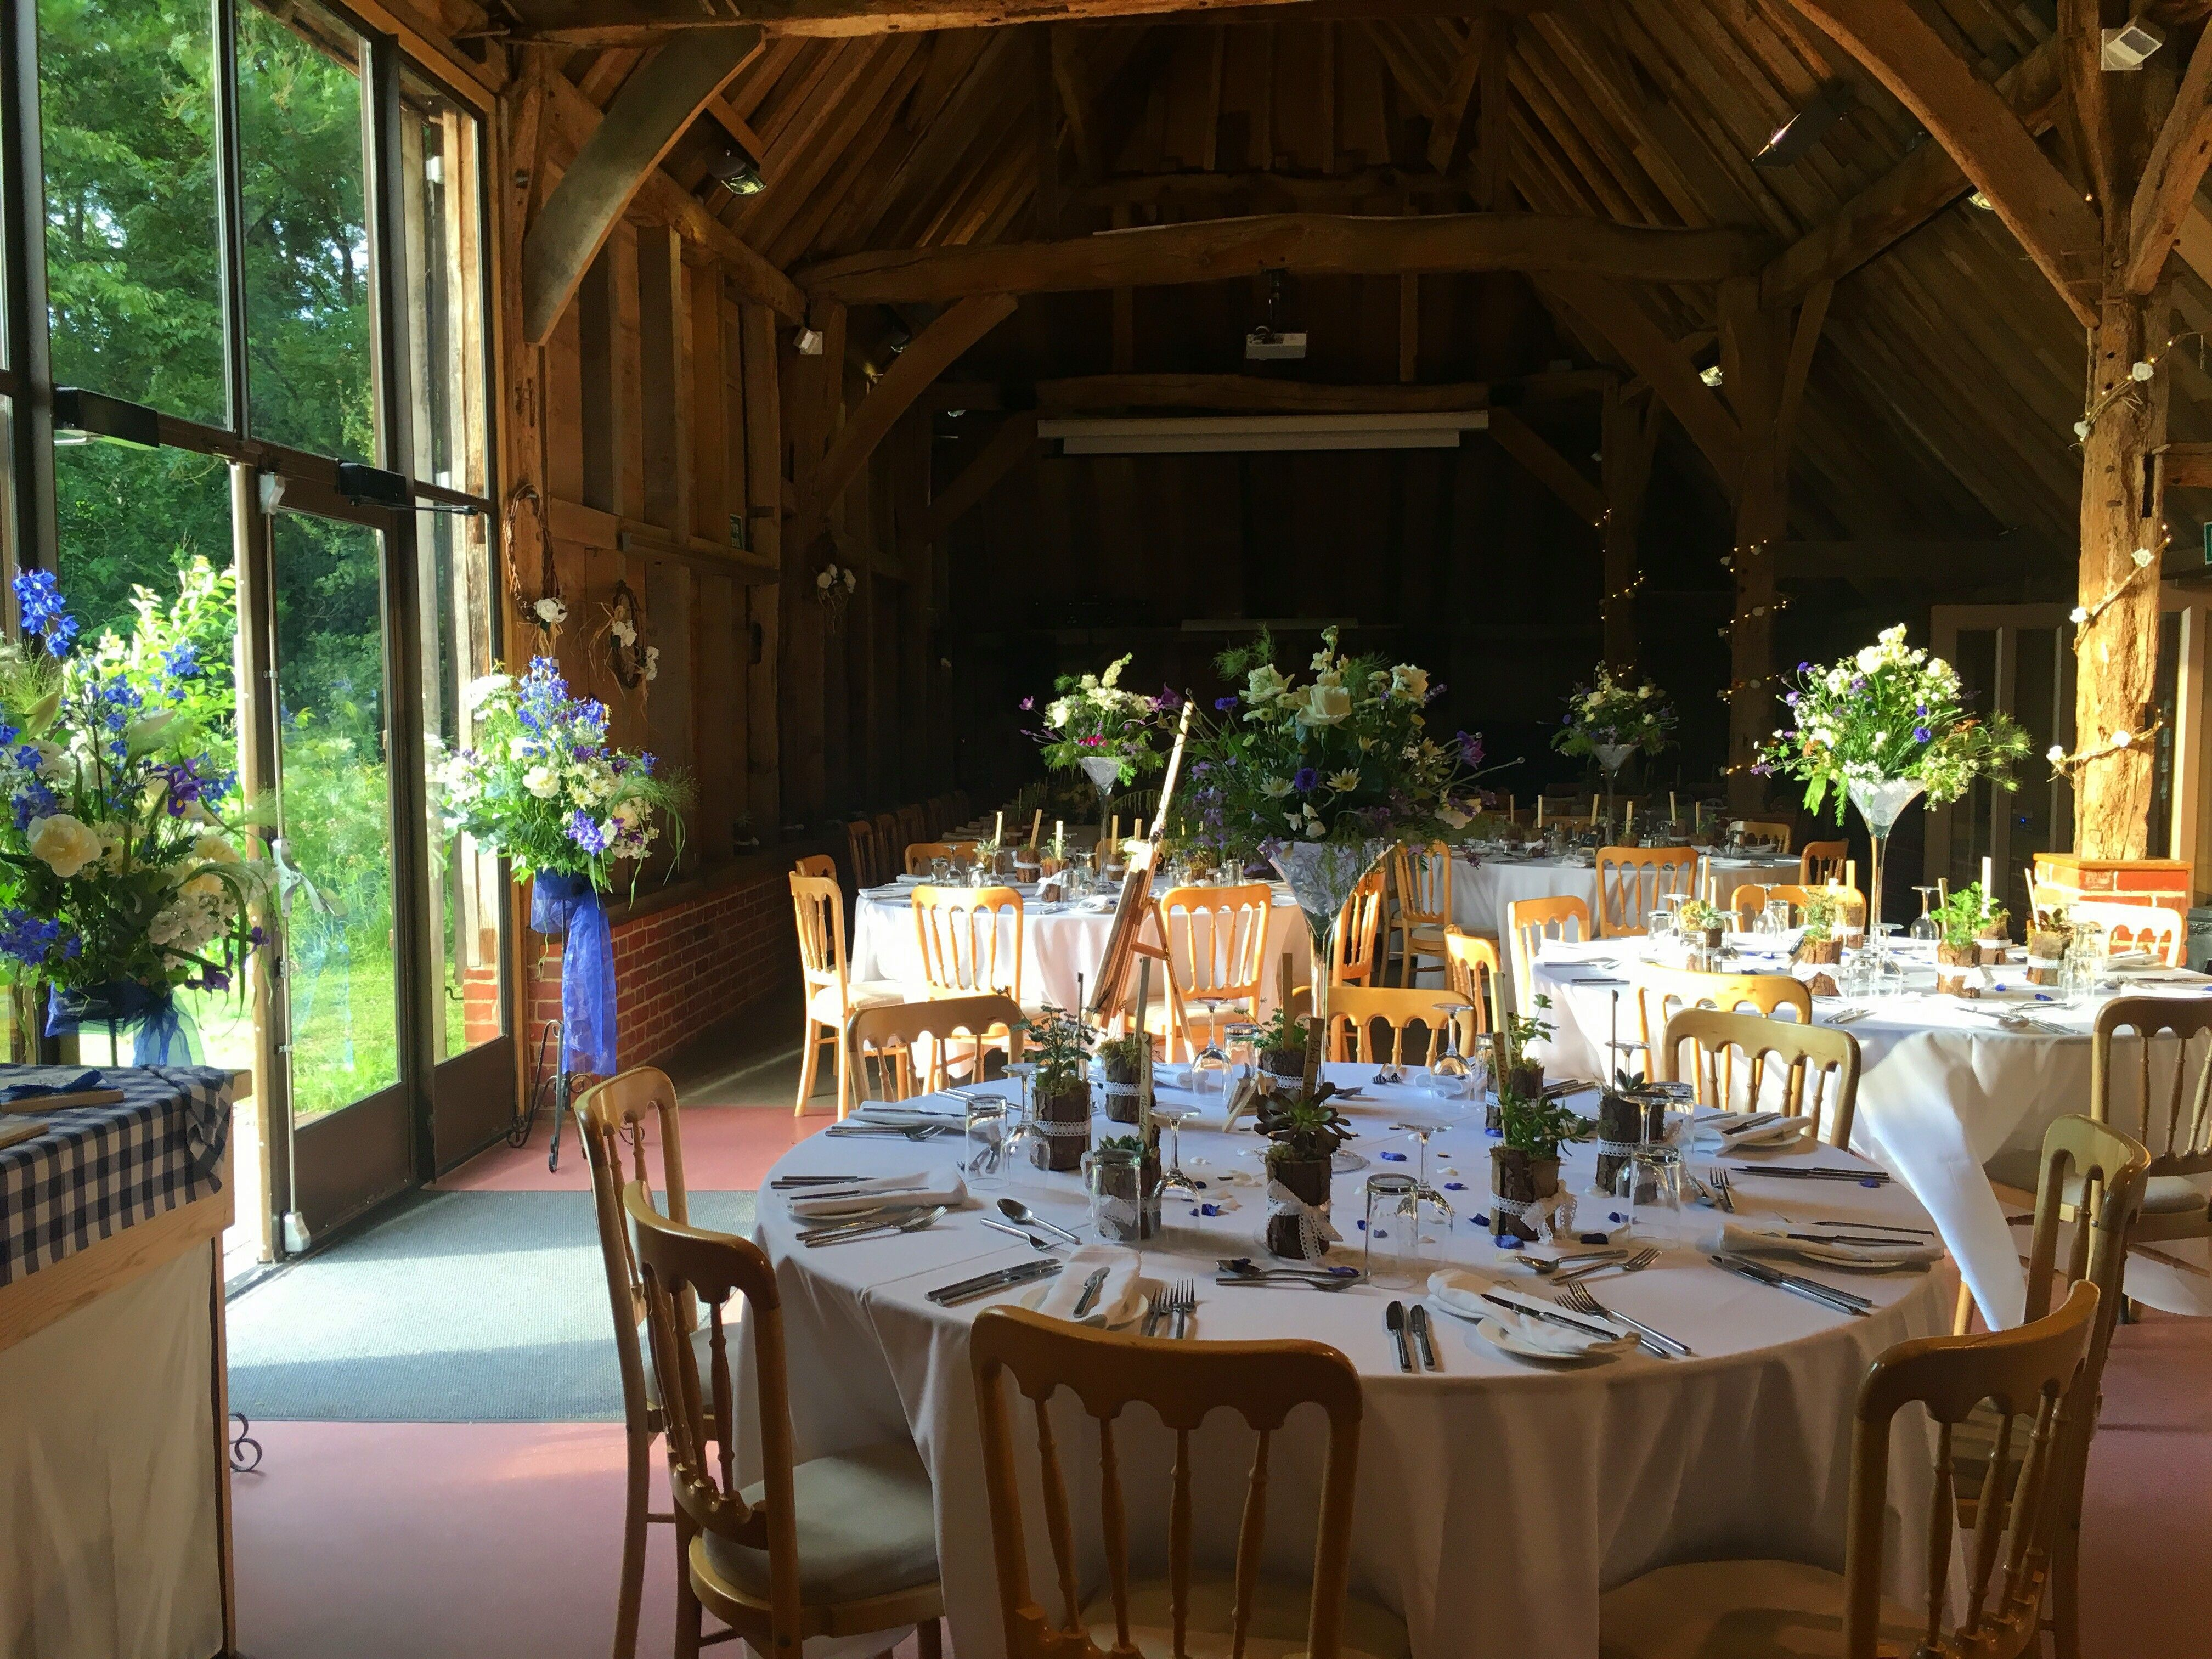 Gilbert Whites House Is A Barn Wedding Venue Near Alton Hampshire Free Spirited And